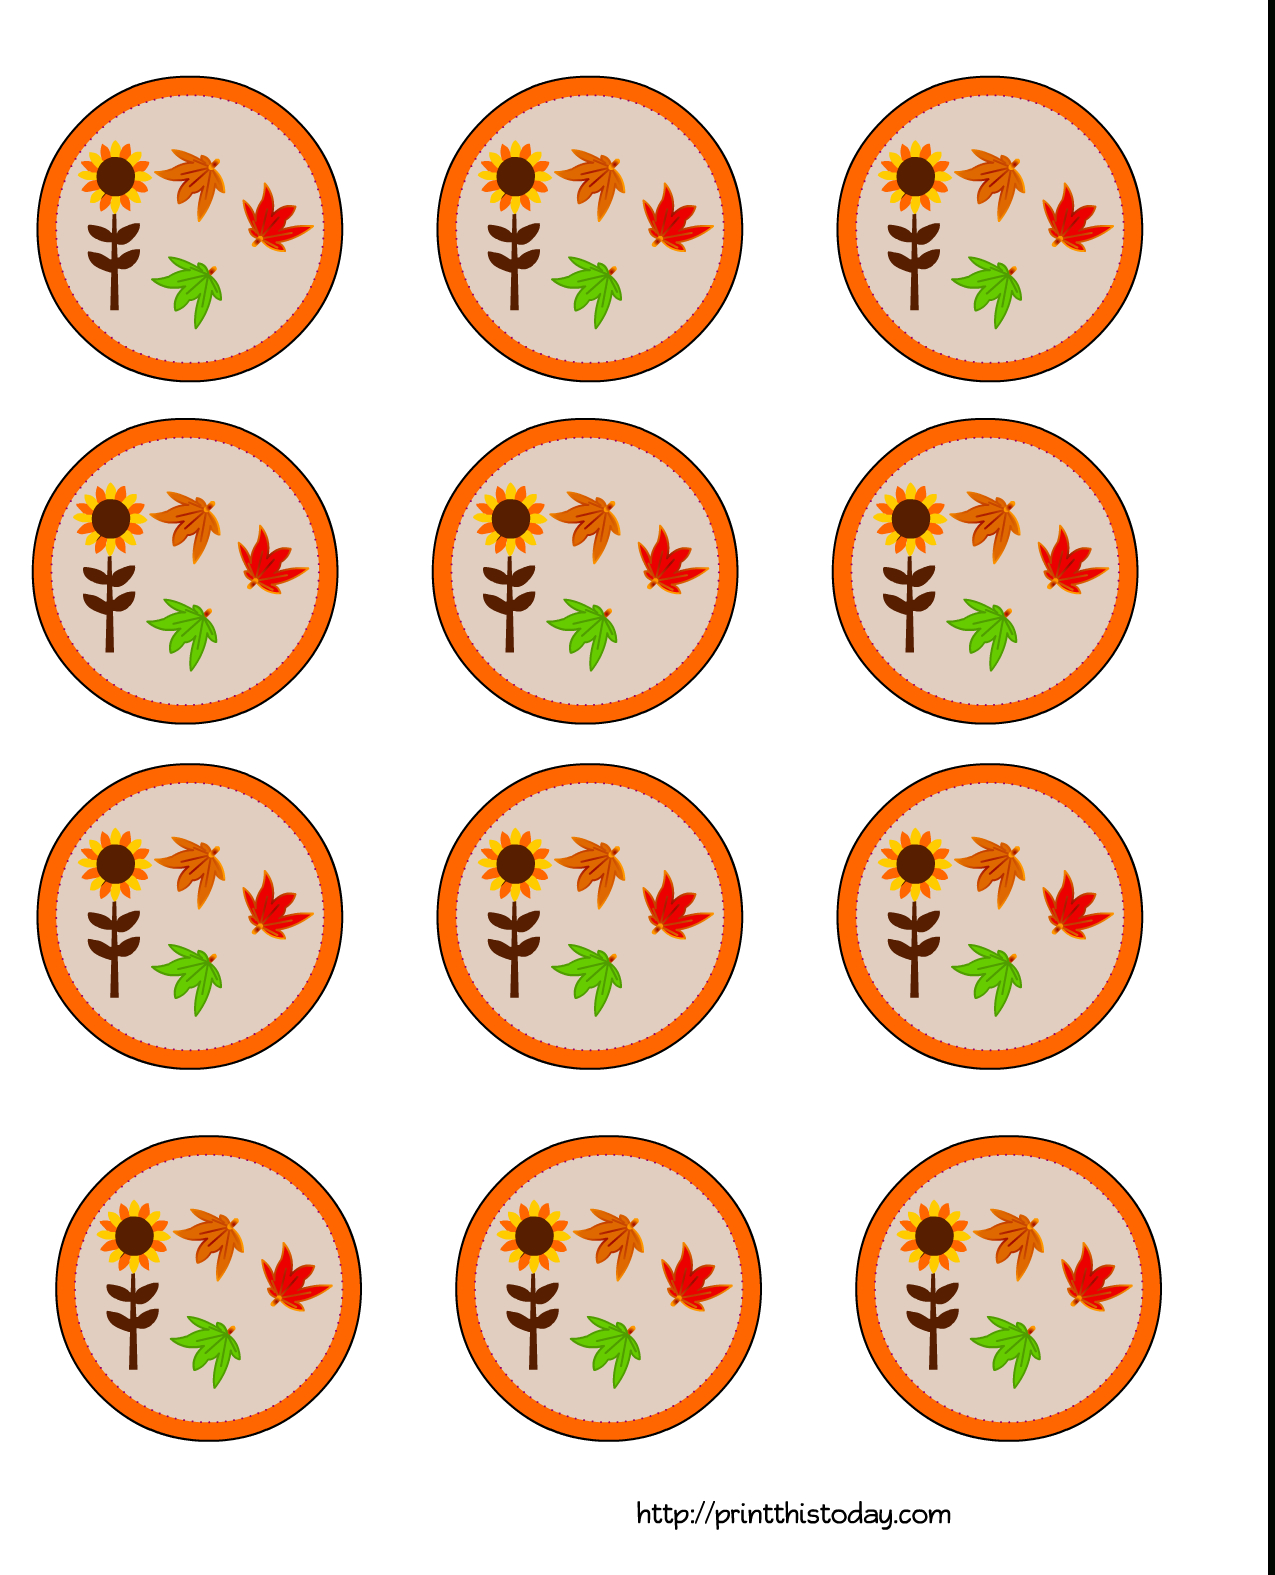 Free Printable Thanksgiving Cupcake Toppers - Thanksgiving Cupcake Toppers Printable Free